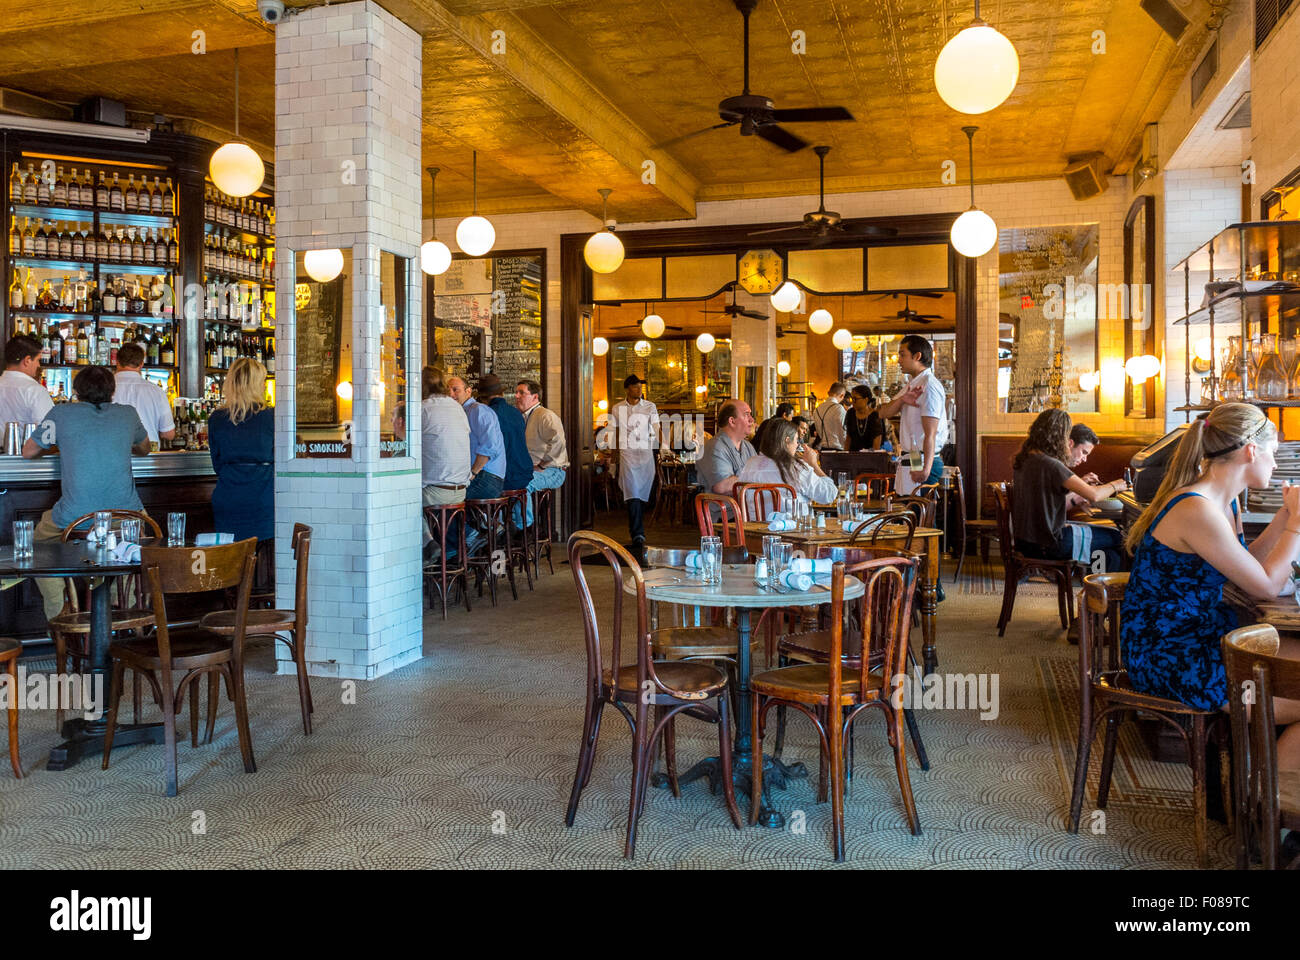 New York City, USA, Meat Packing District, People Sharing Meals in Traditional French Bistro Restaurant Dining Room, Stock Photo